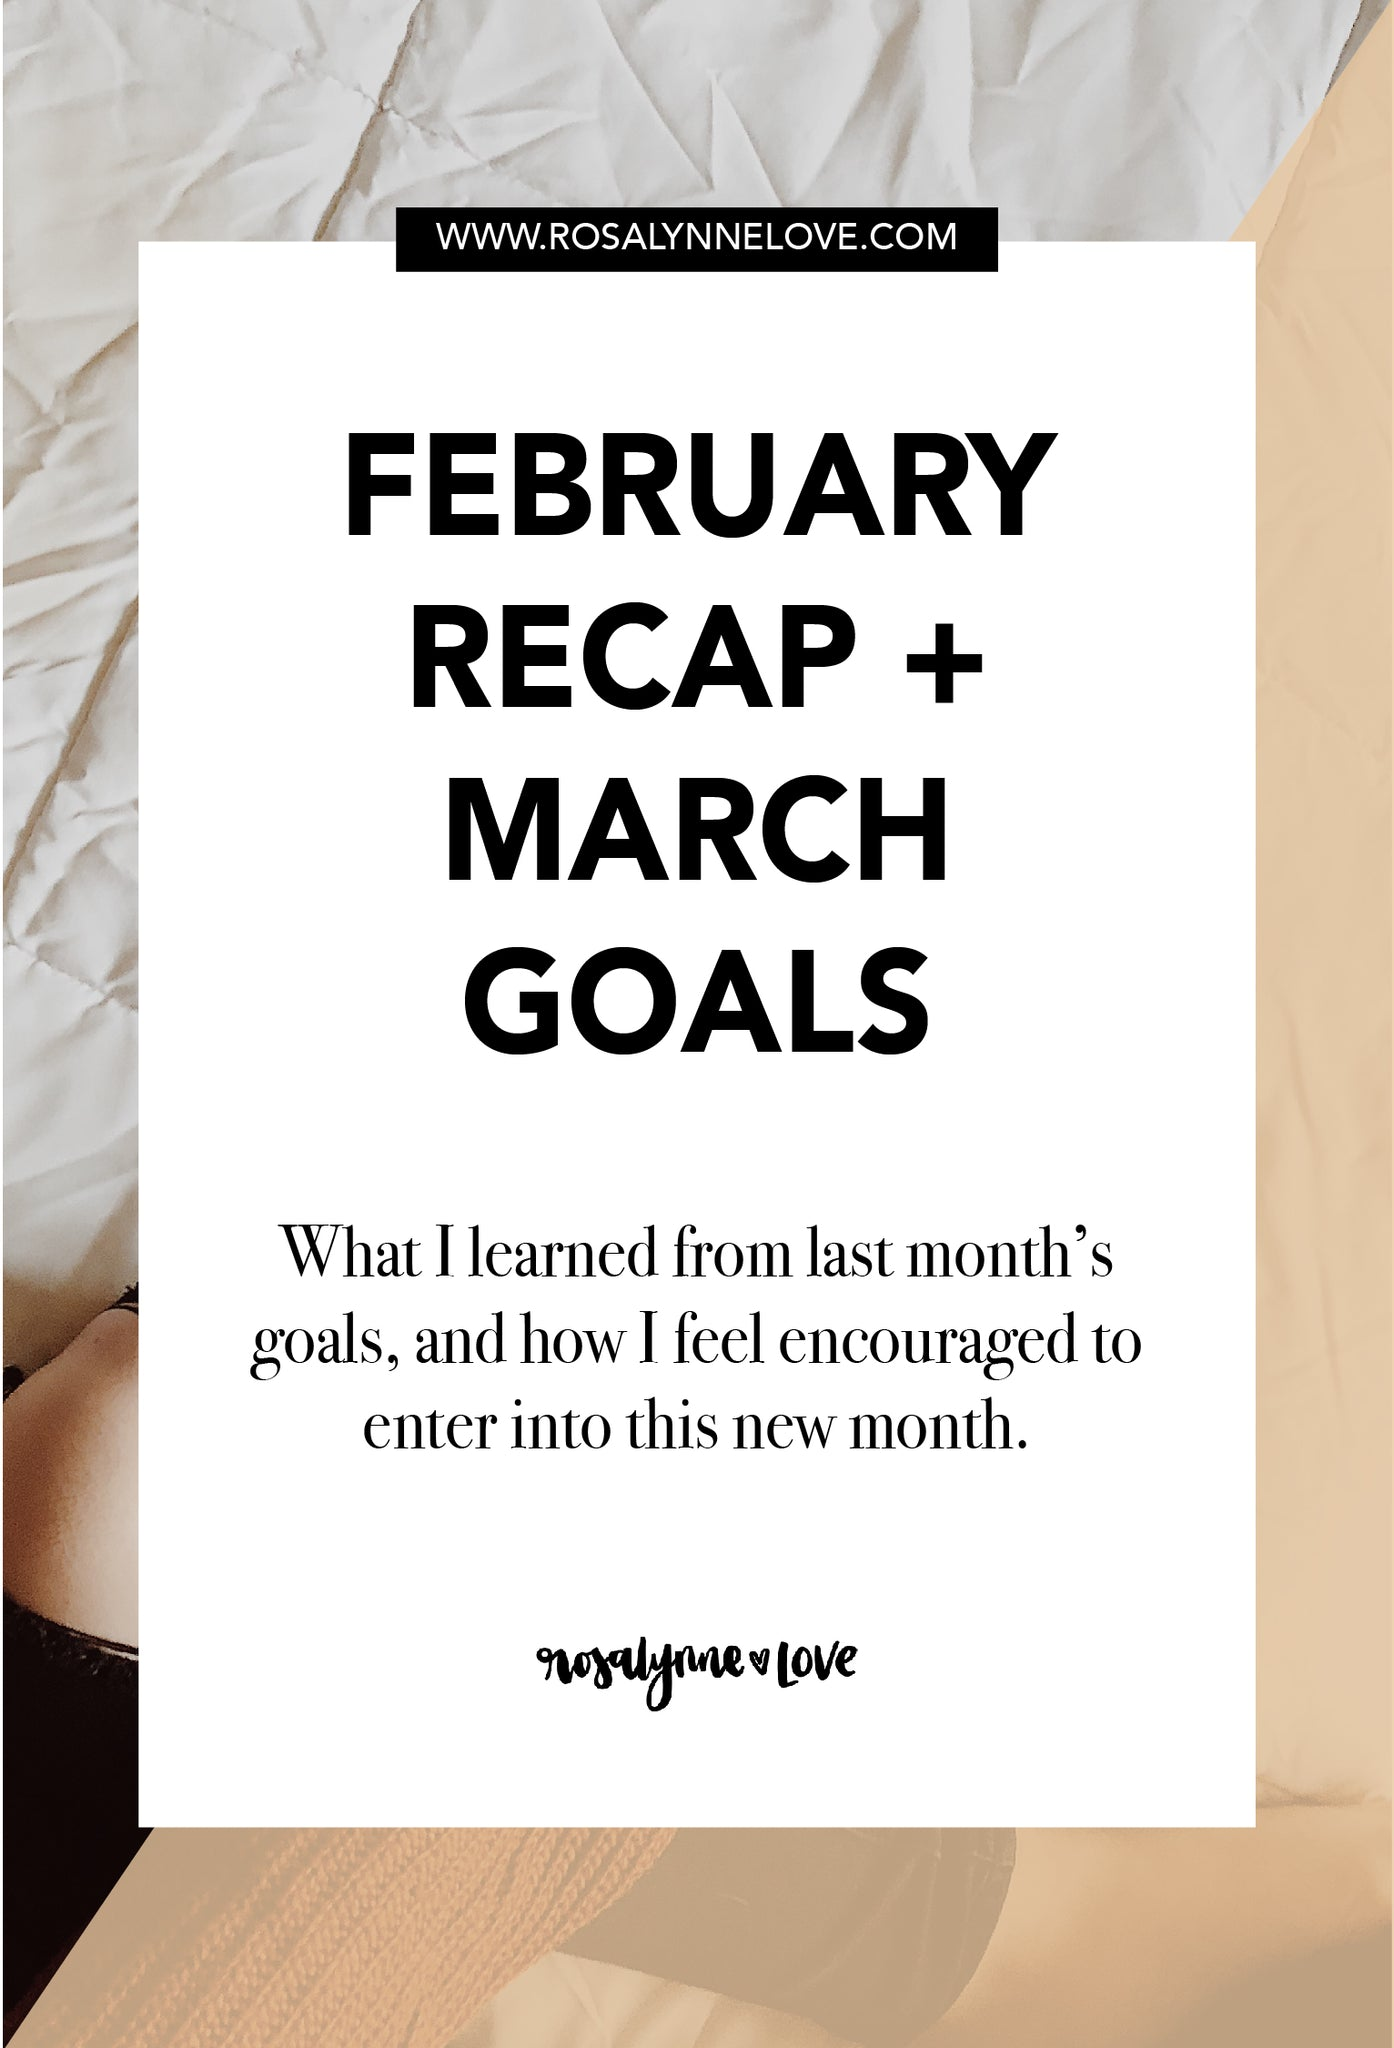 February Recap + March Goals